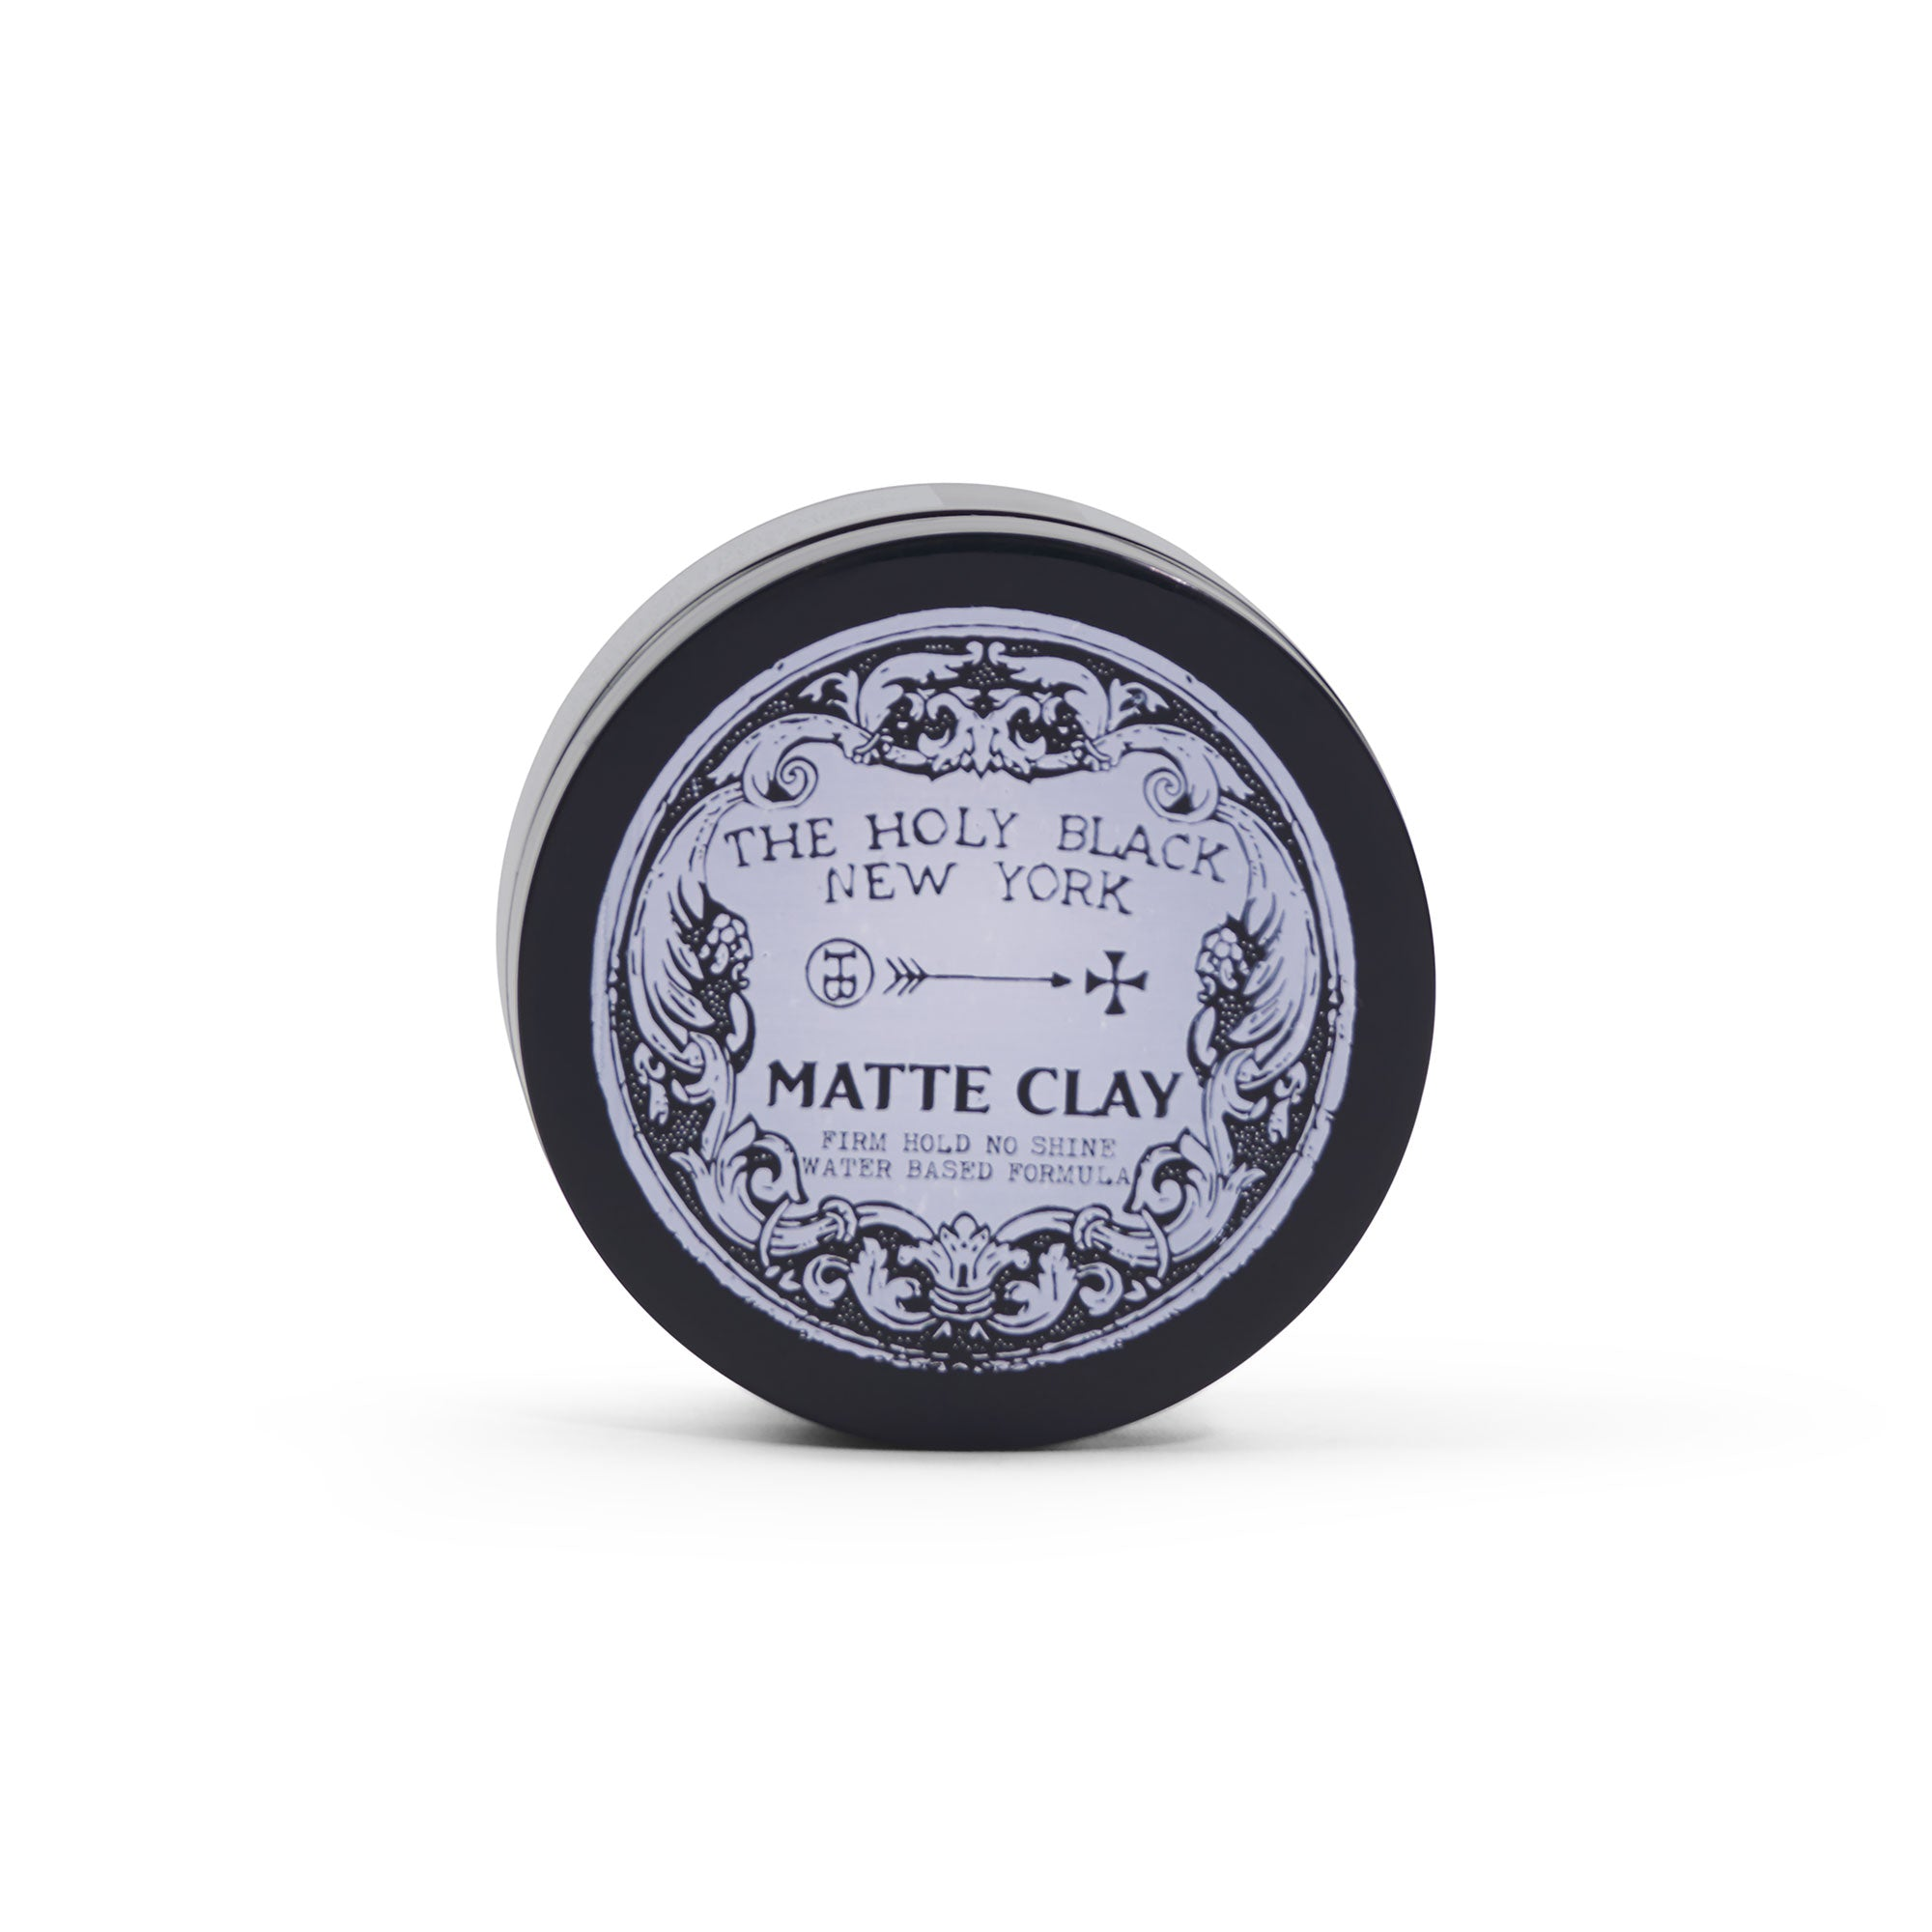 The Holy Black Matte Clay Pomade